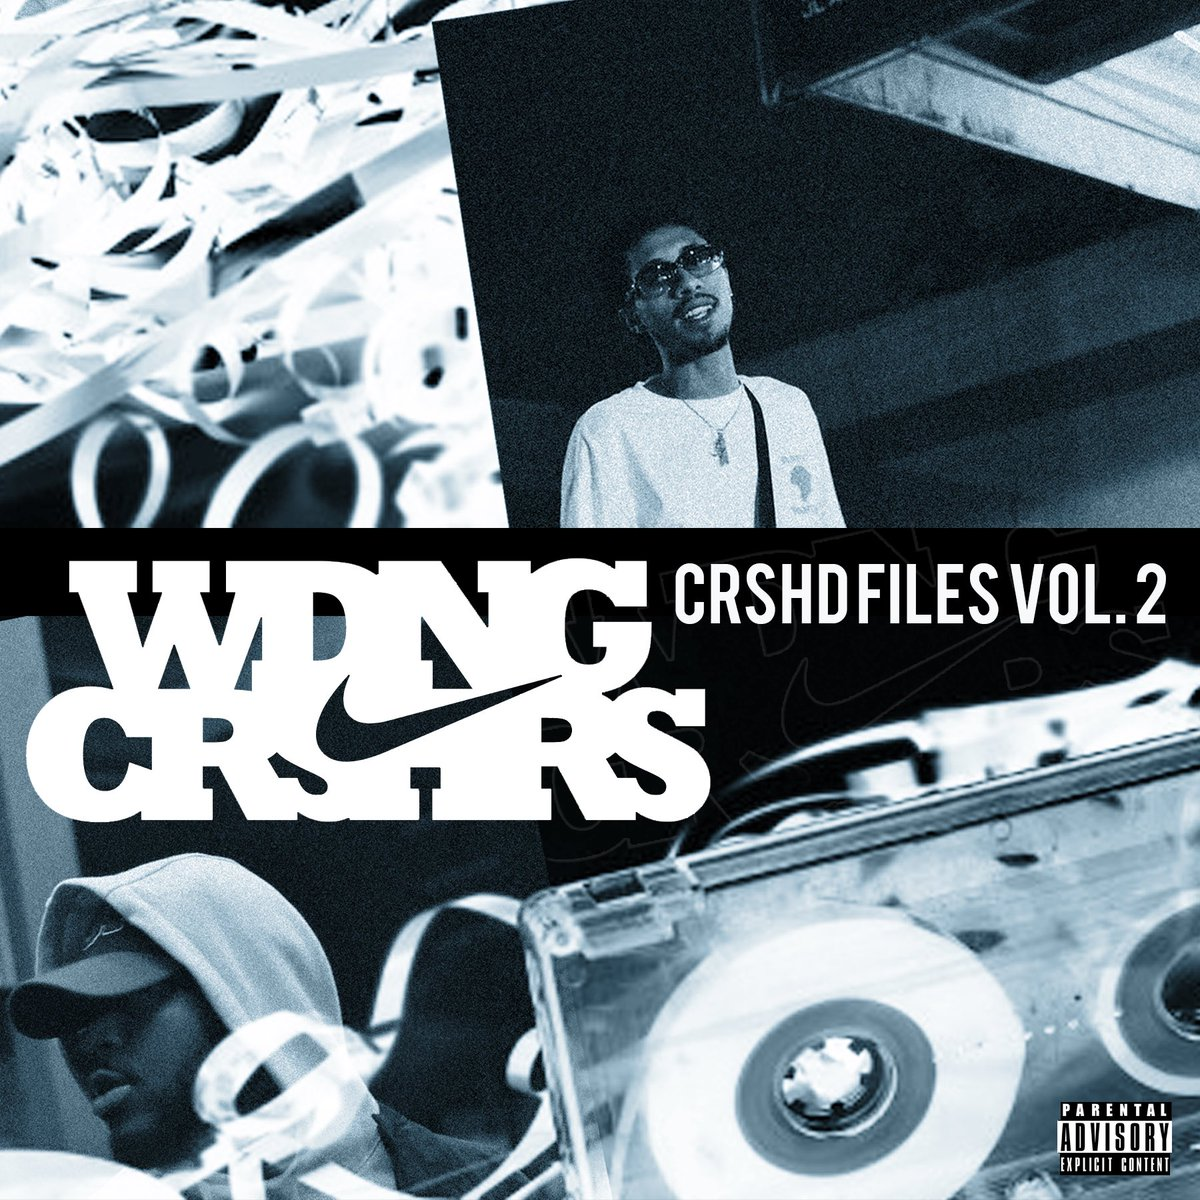 WDNG CRSHRS (QUENTIN MILLER & COOL IS MAC) release highly anticipated project CRSHDFILES VOL. 2 available on all streaming platforms.